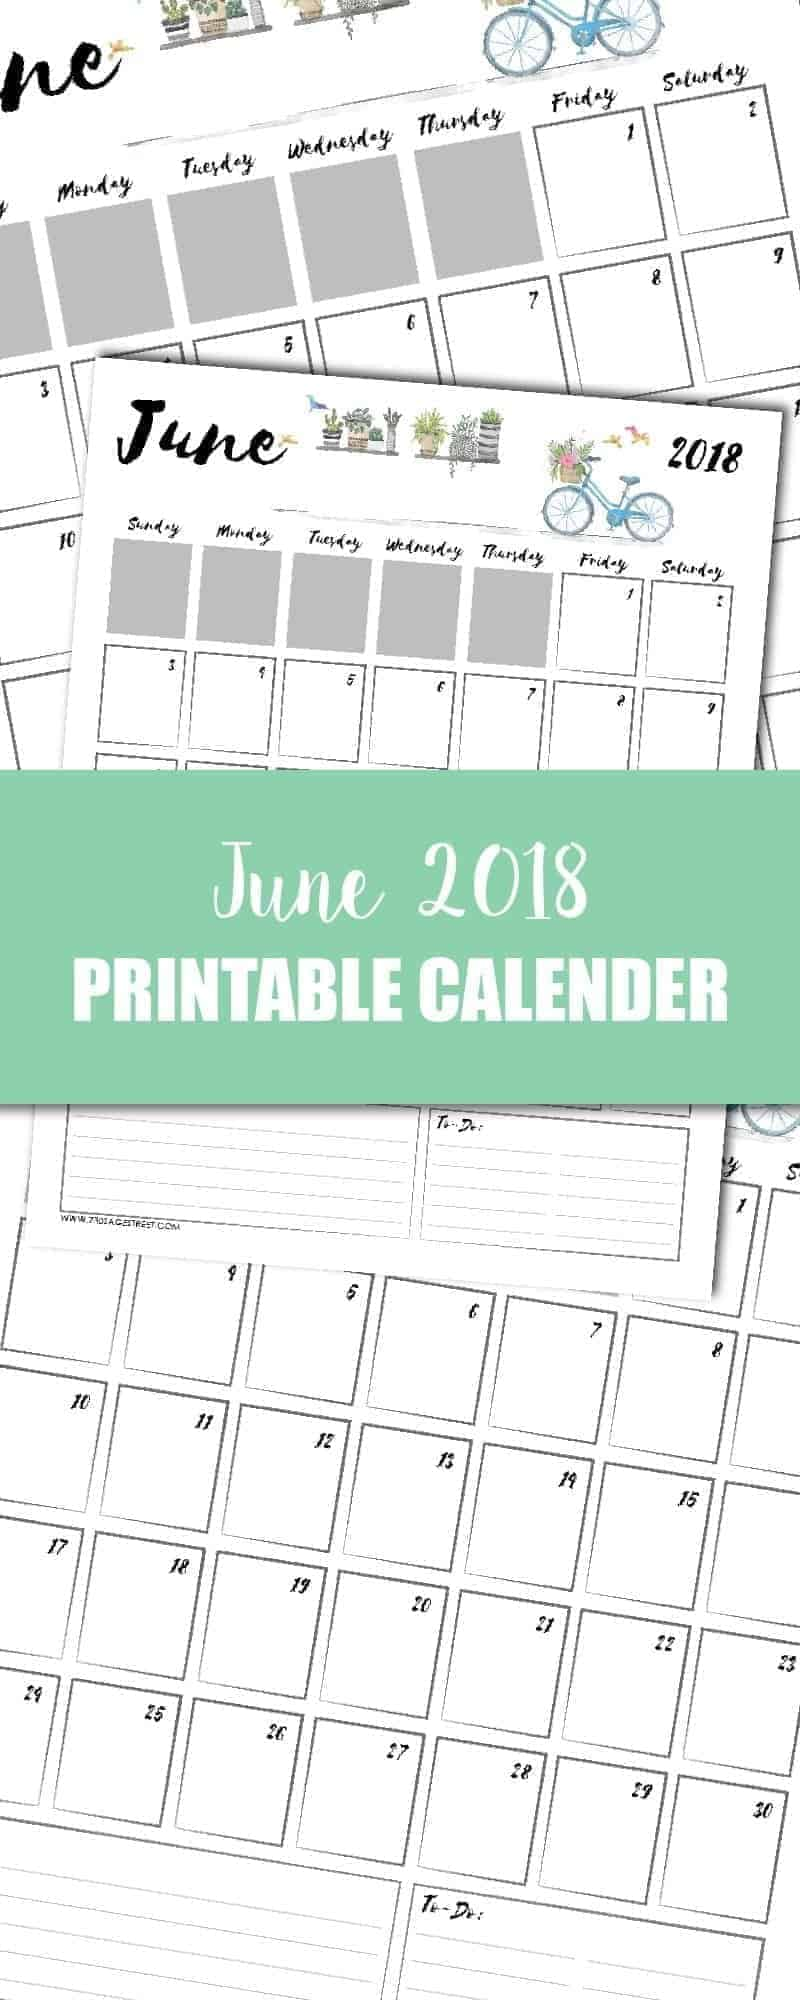 tall graphic showing a June 2018 printable calendar